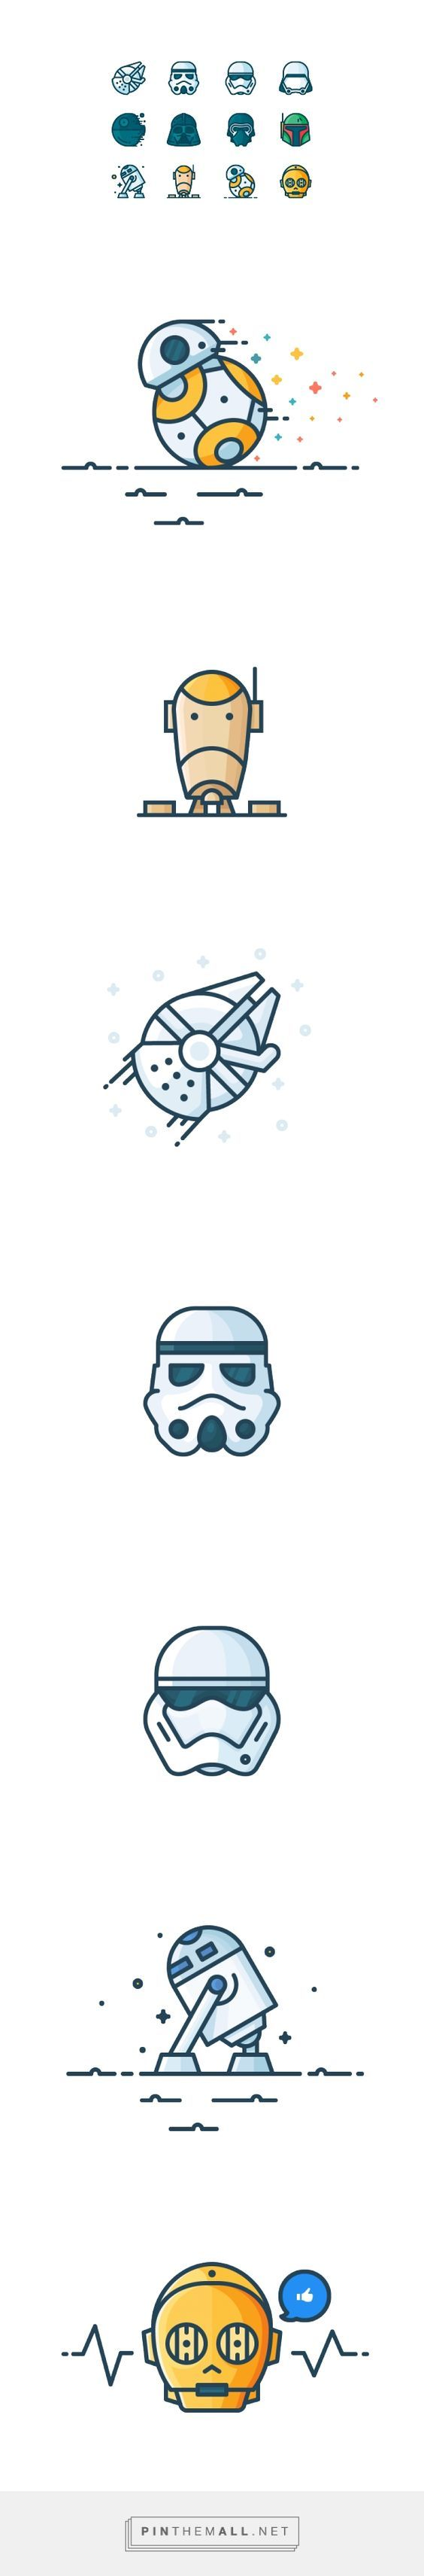 Outline Star Wars Icons on Behance {cT}